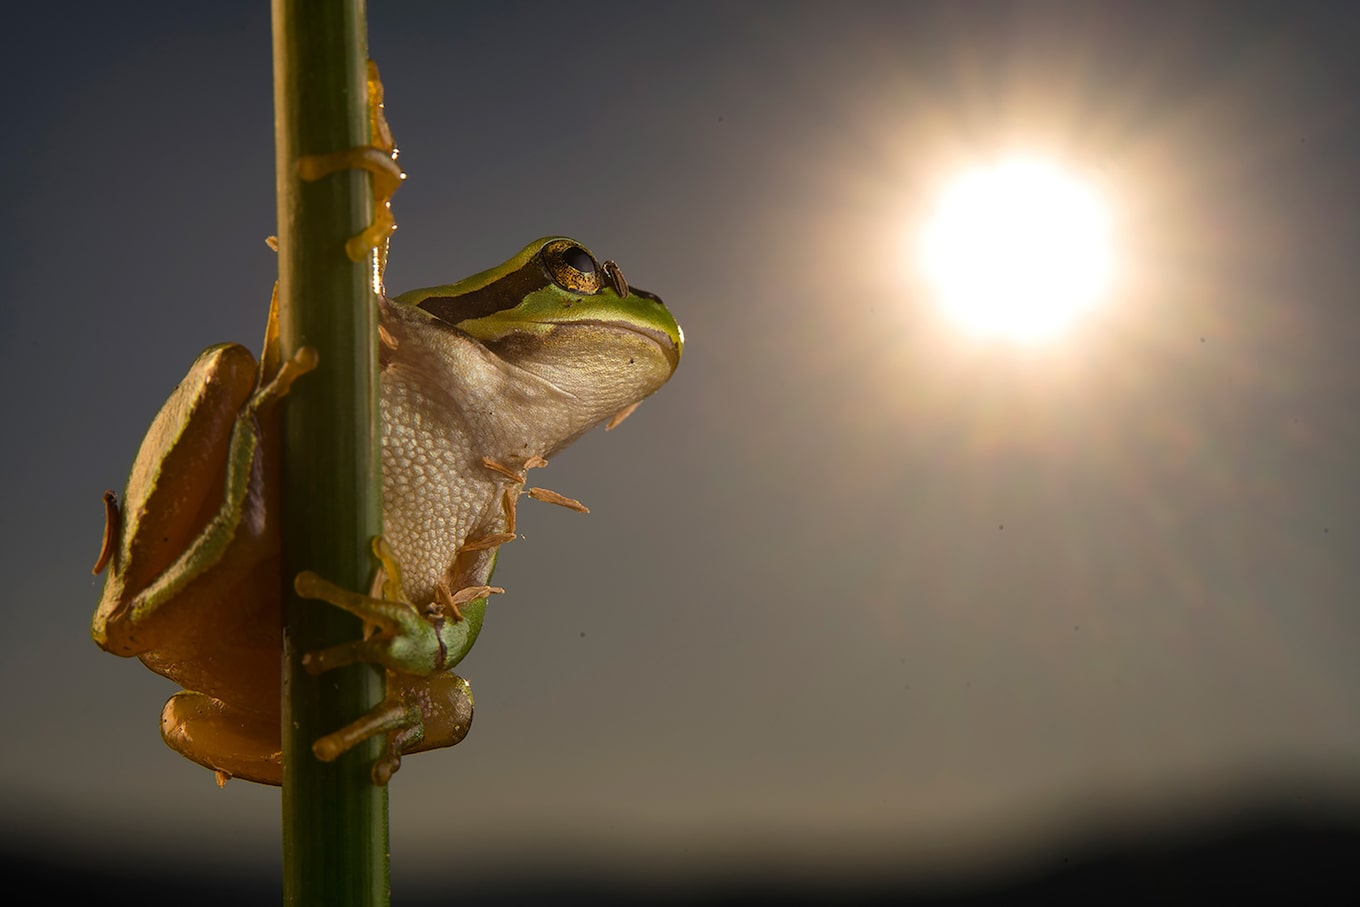 javier-aznar-sony-alpha-7RIII-frog-clings-to-plant-stem-with-the-sun-shining-in-the-background